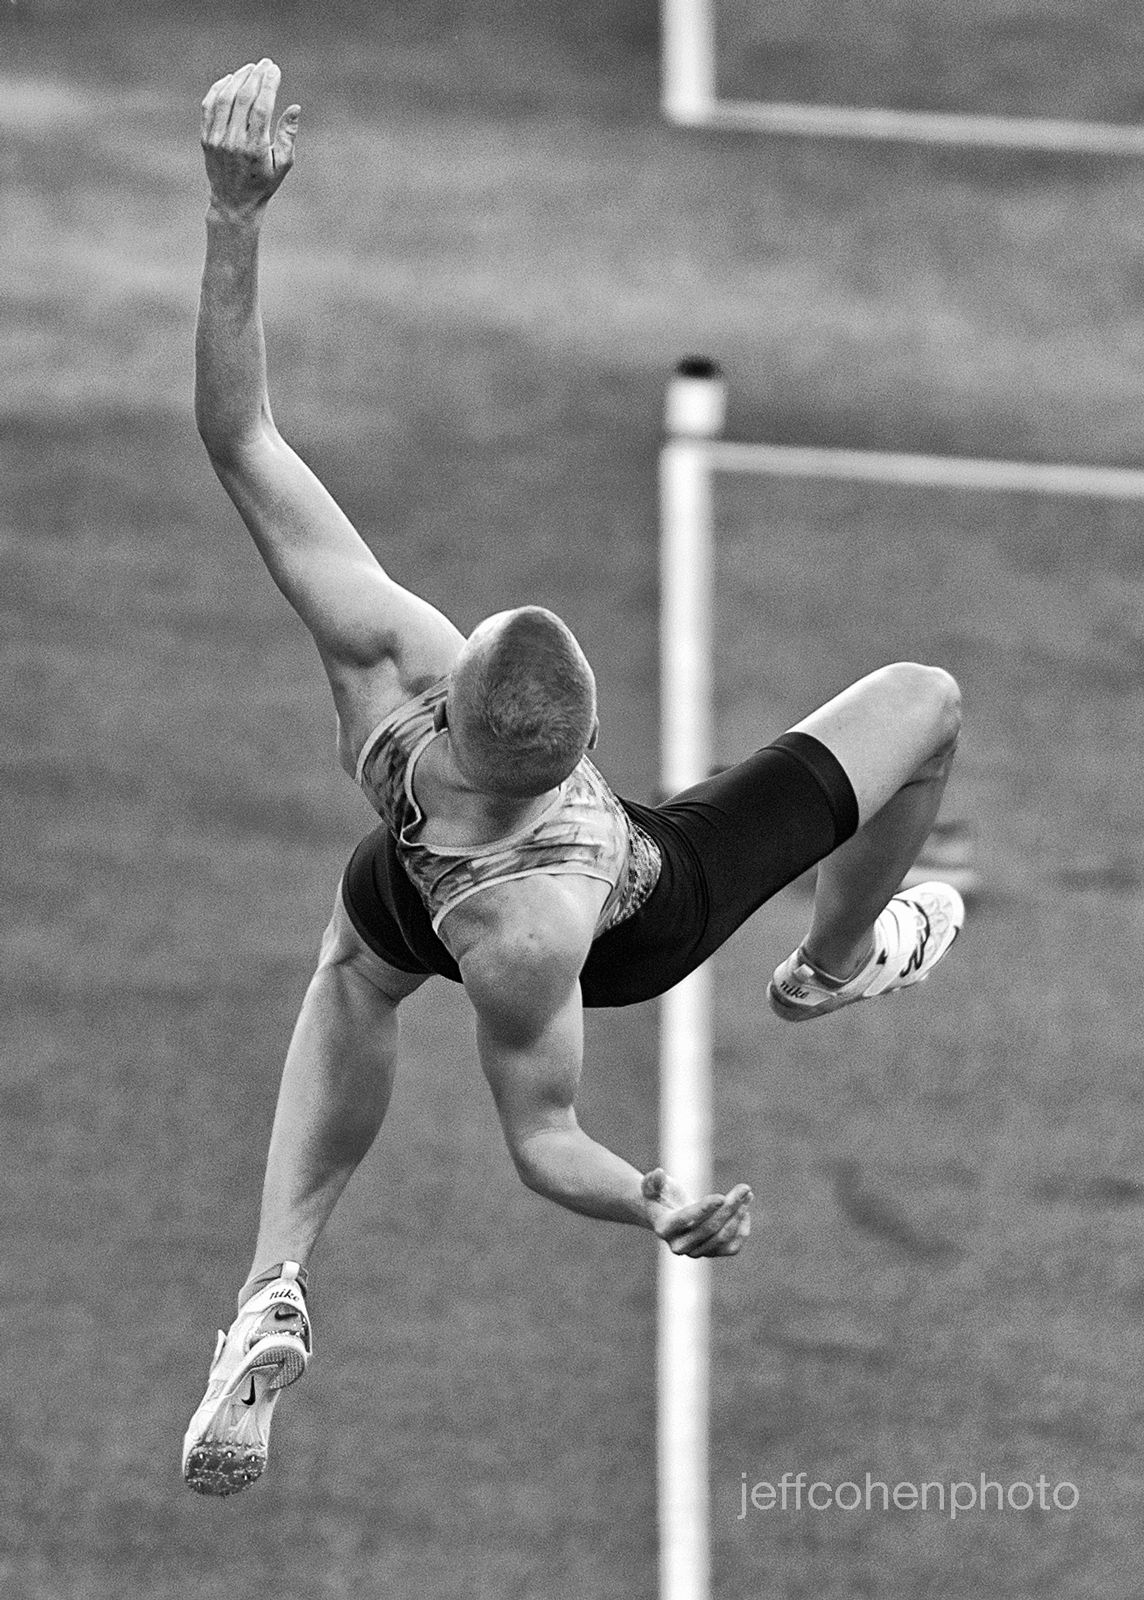 2017-weltklasse-zurich--4567-kendricks-pv-bw--jeff-cohen-photo--web.jpg